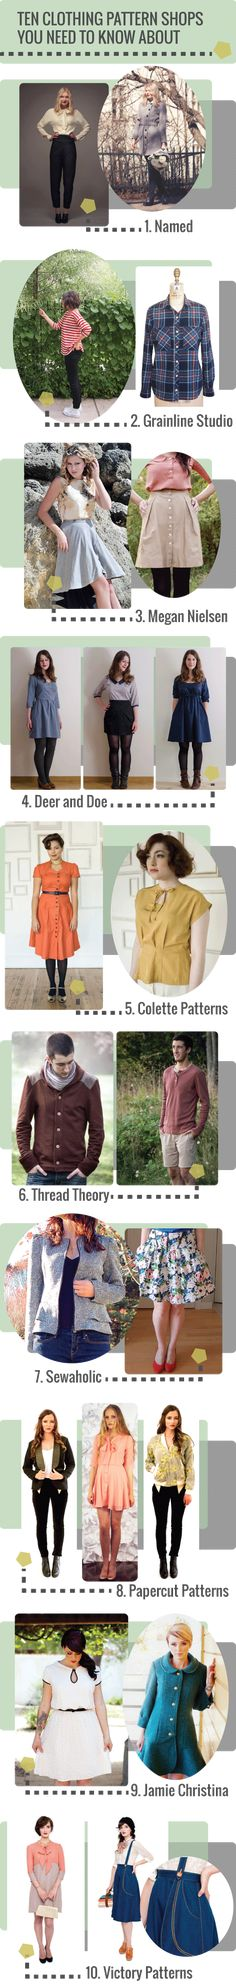 ten clothing pattern shops you need to know about